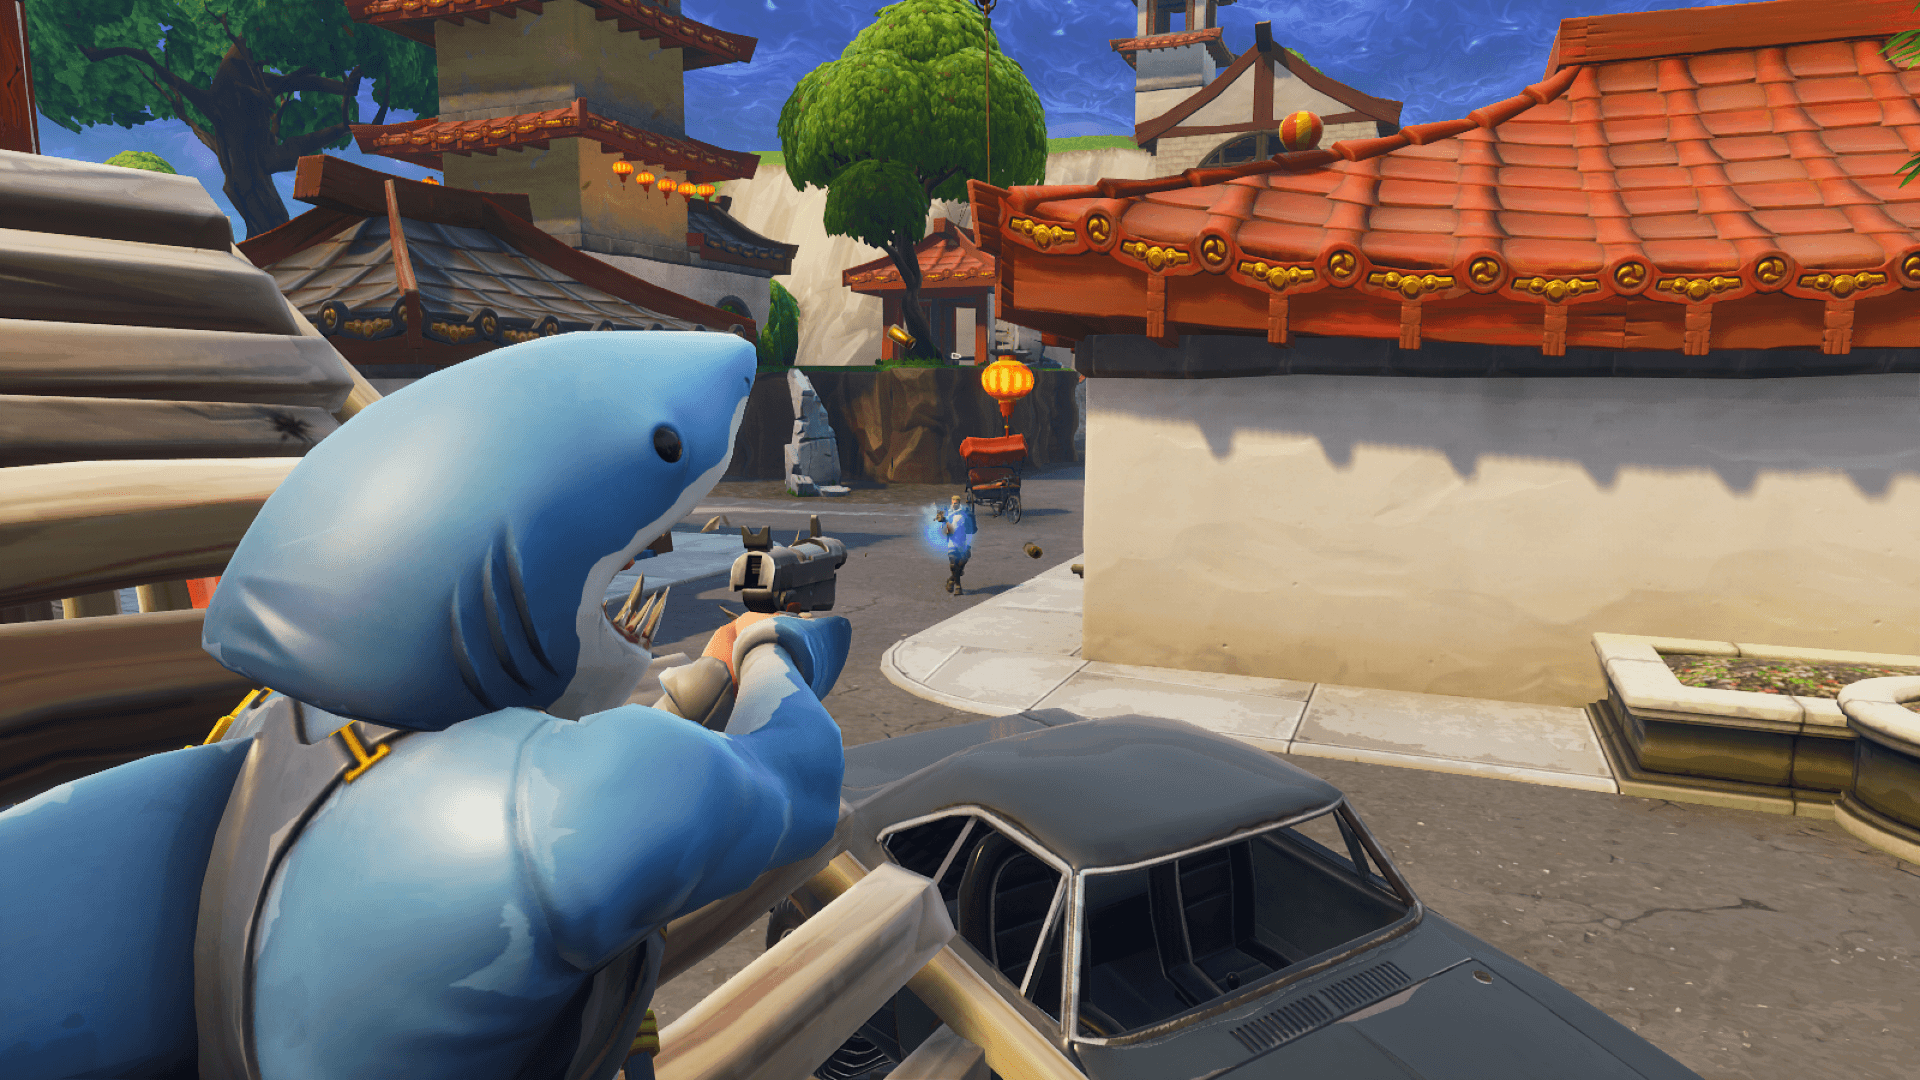 Chomp Sr. is no different than Rex or Tricera Ops, so why the hate ...